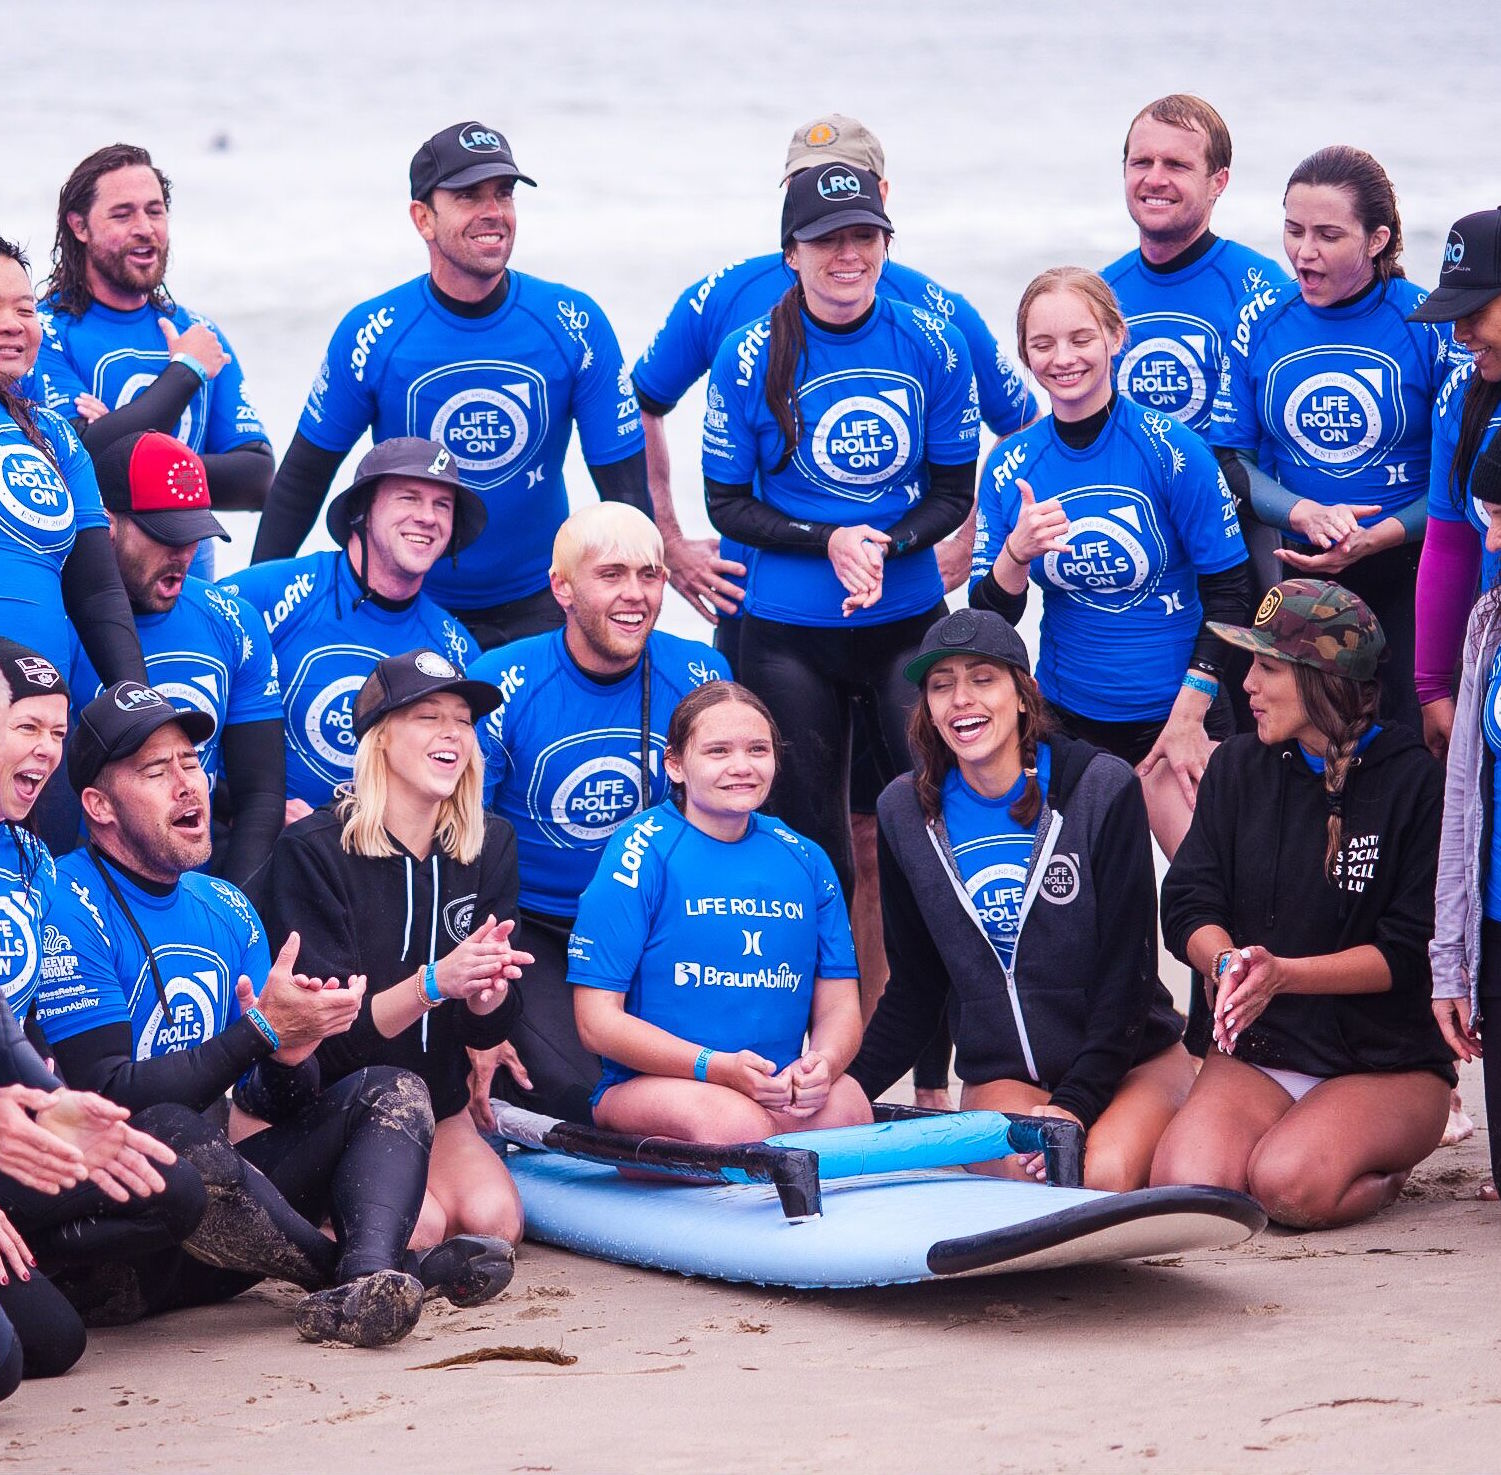 Epic surf events for adaptive athletes